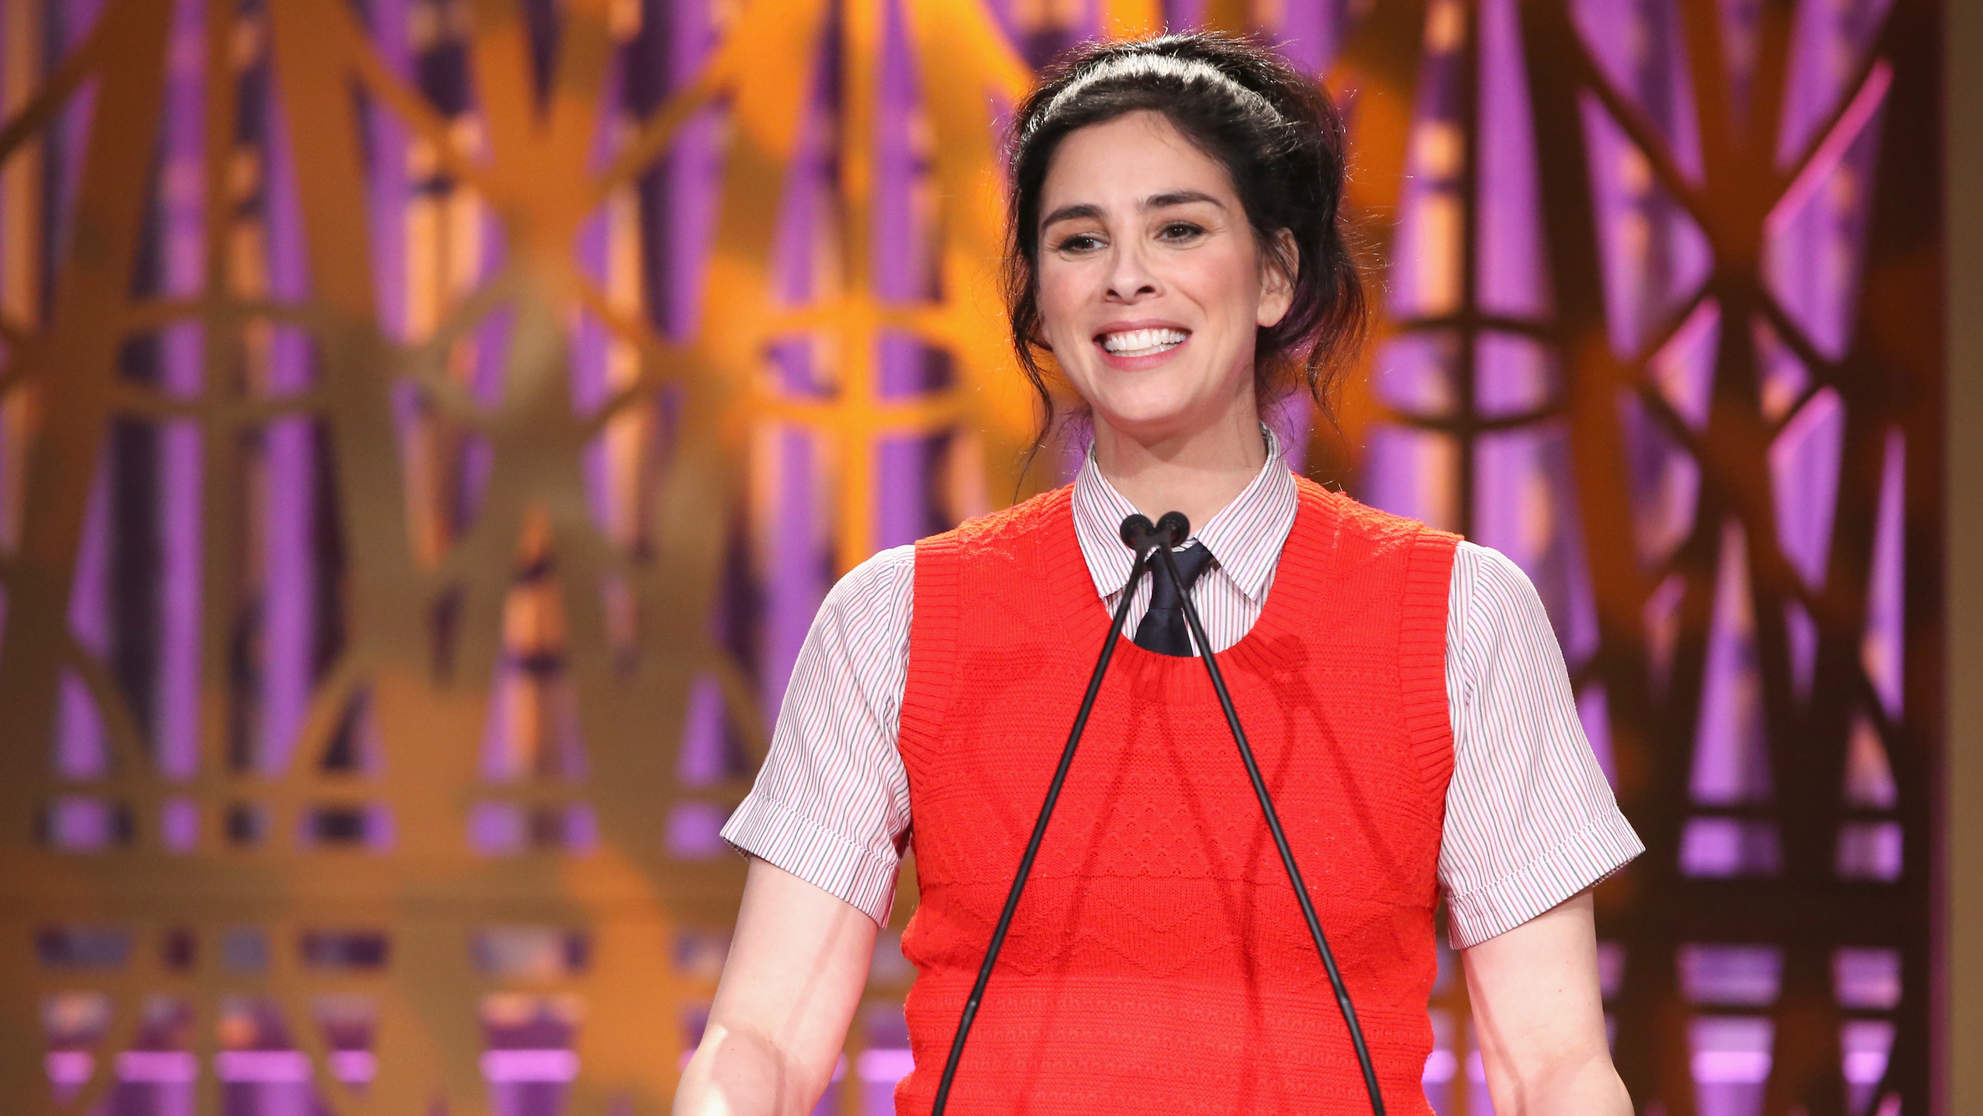 Sarah Silverman Responded to a Sexist Twitter Troll, and Their Conversation Took a Surprisingly Heartwarming Turn